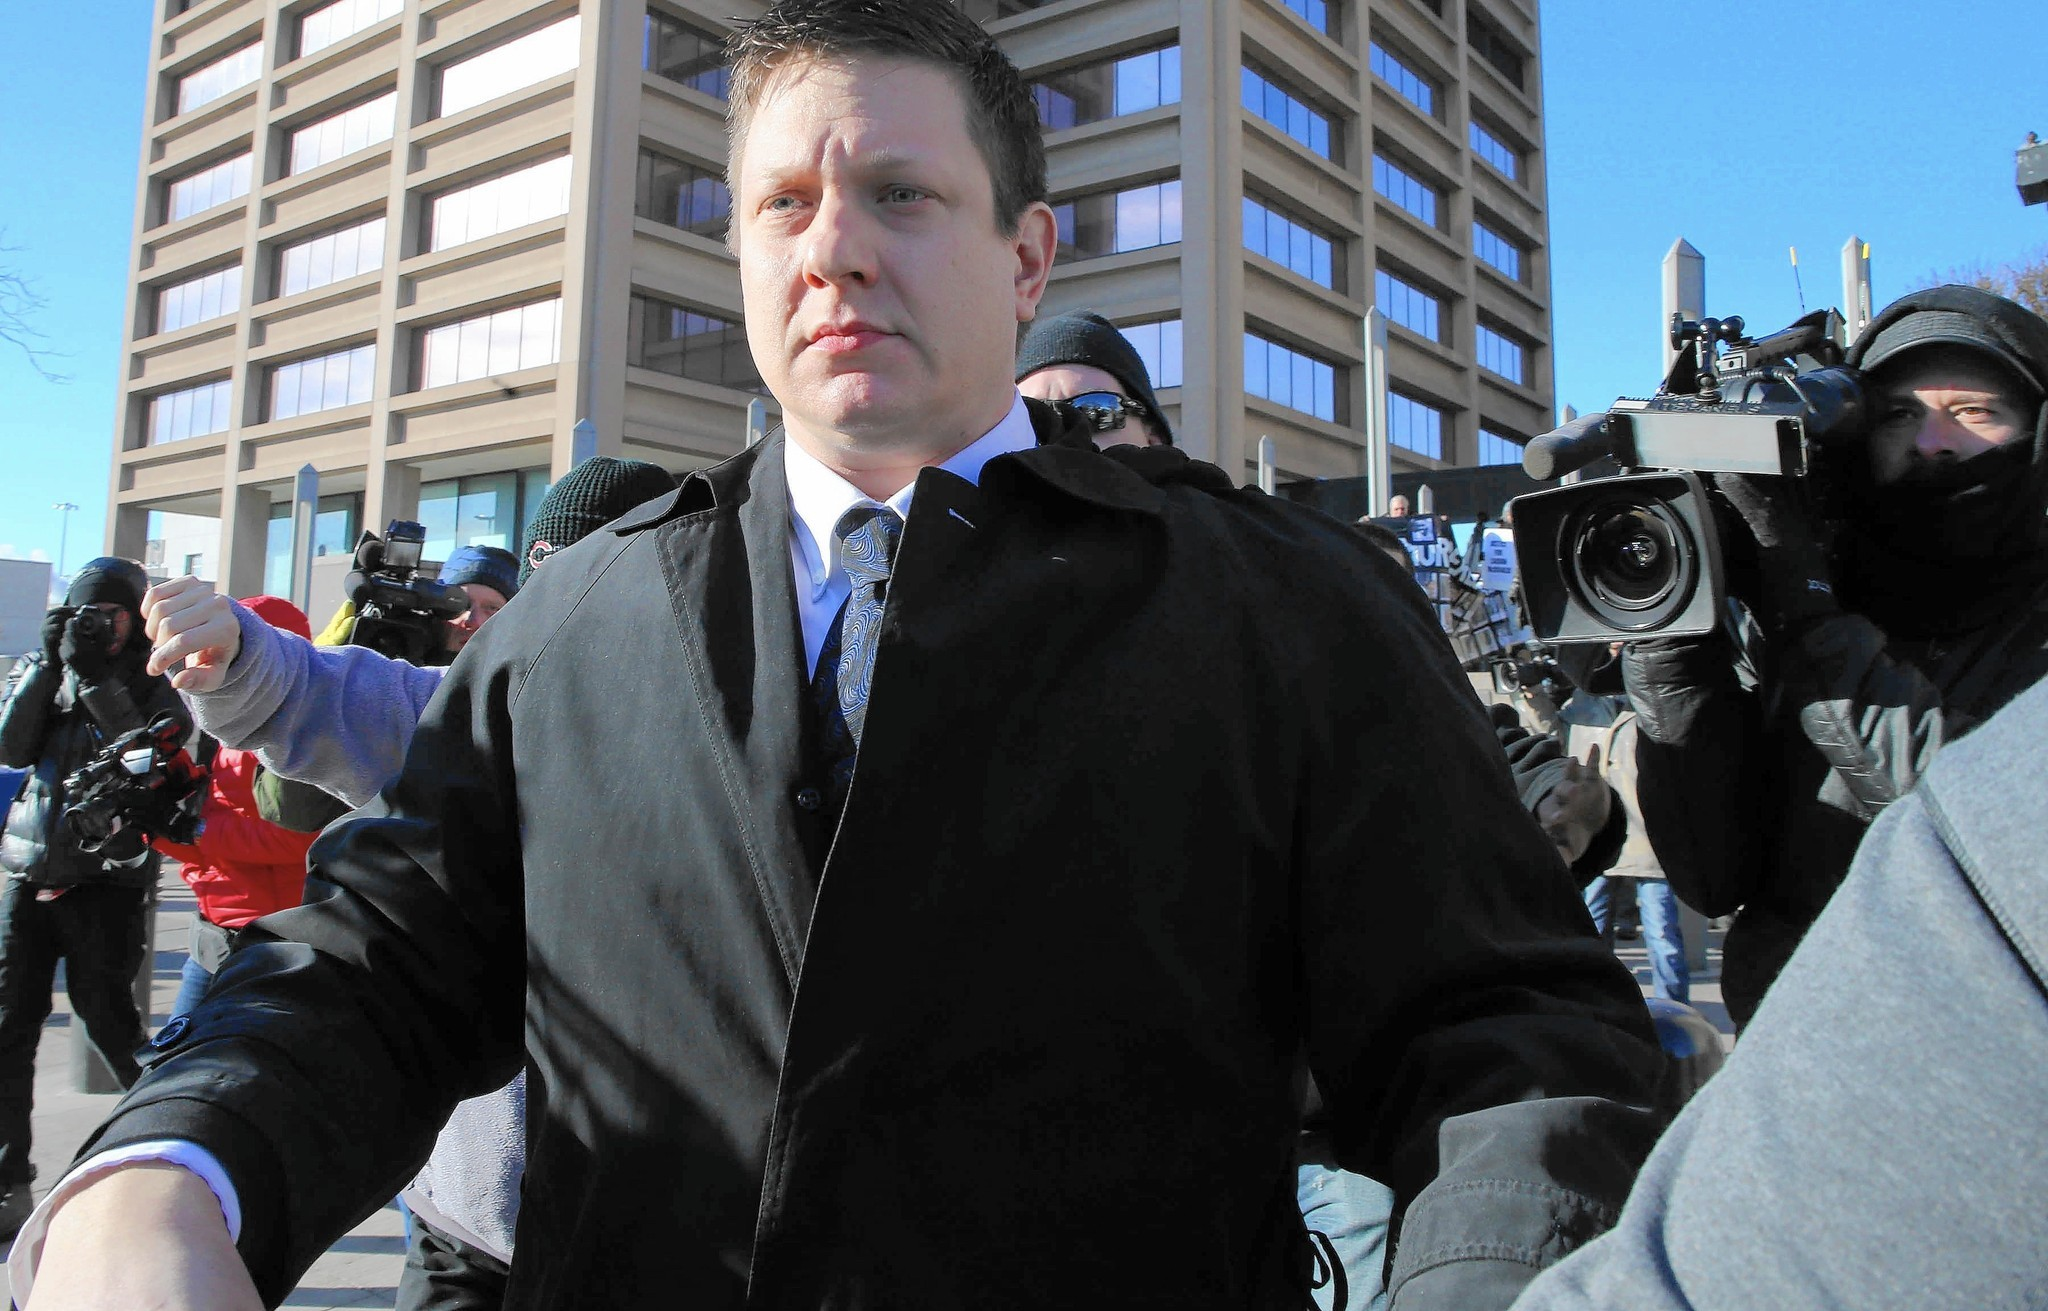 Officer In Laquan Mcdonald Killing Not The Monster